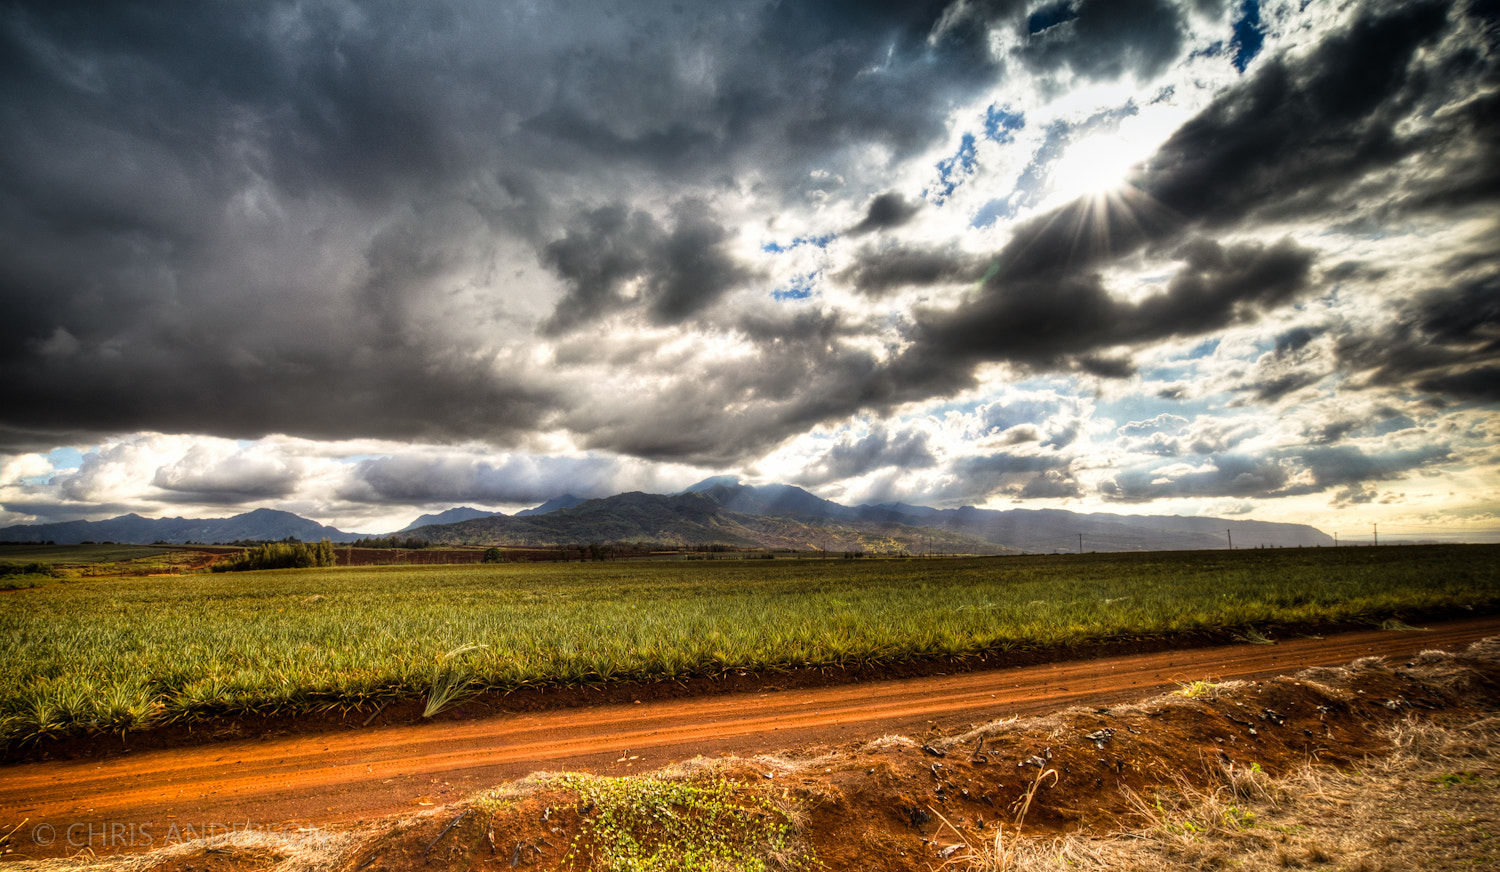 Photograph Pineapple fields forever by Chris Anderson on 500px